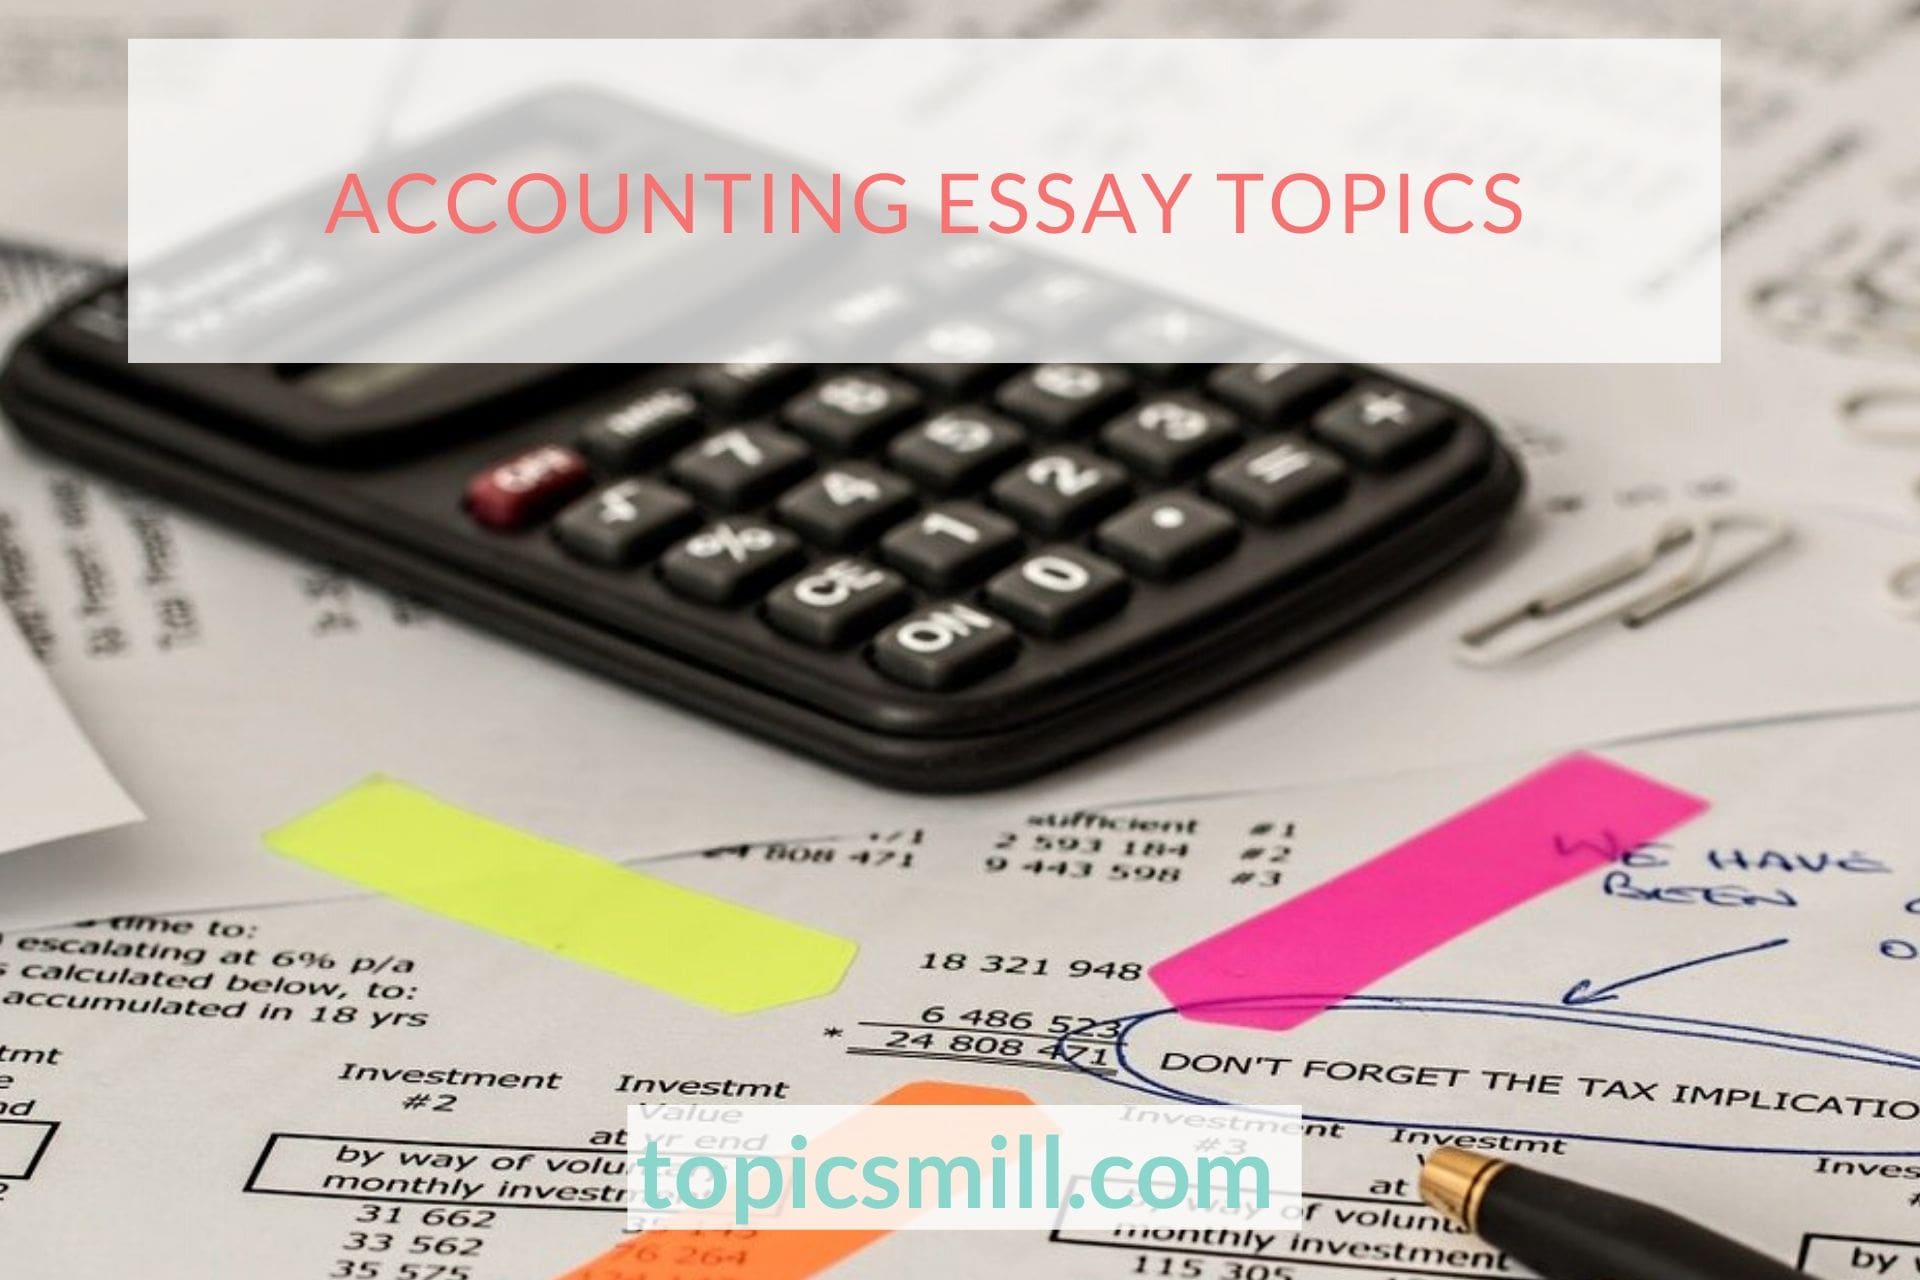 Money management essays